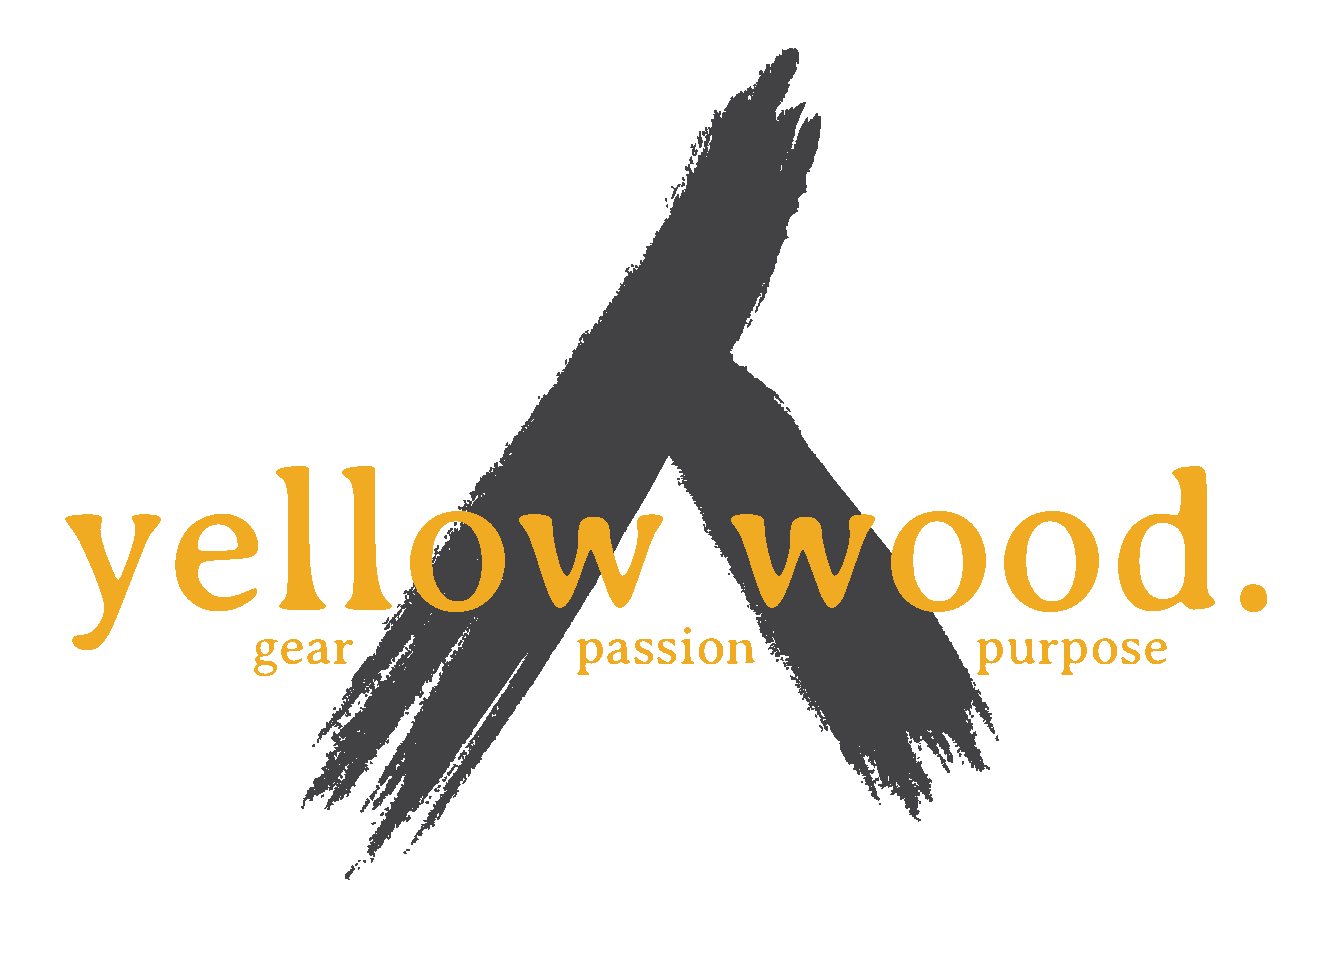 YELLOW WOOD - Whitefish Bay, WI - PARTNER SINCE 2019